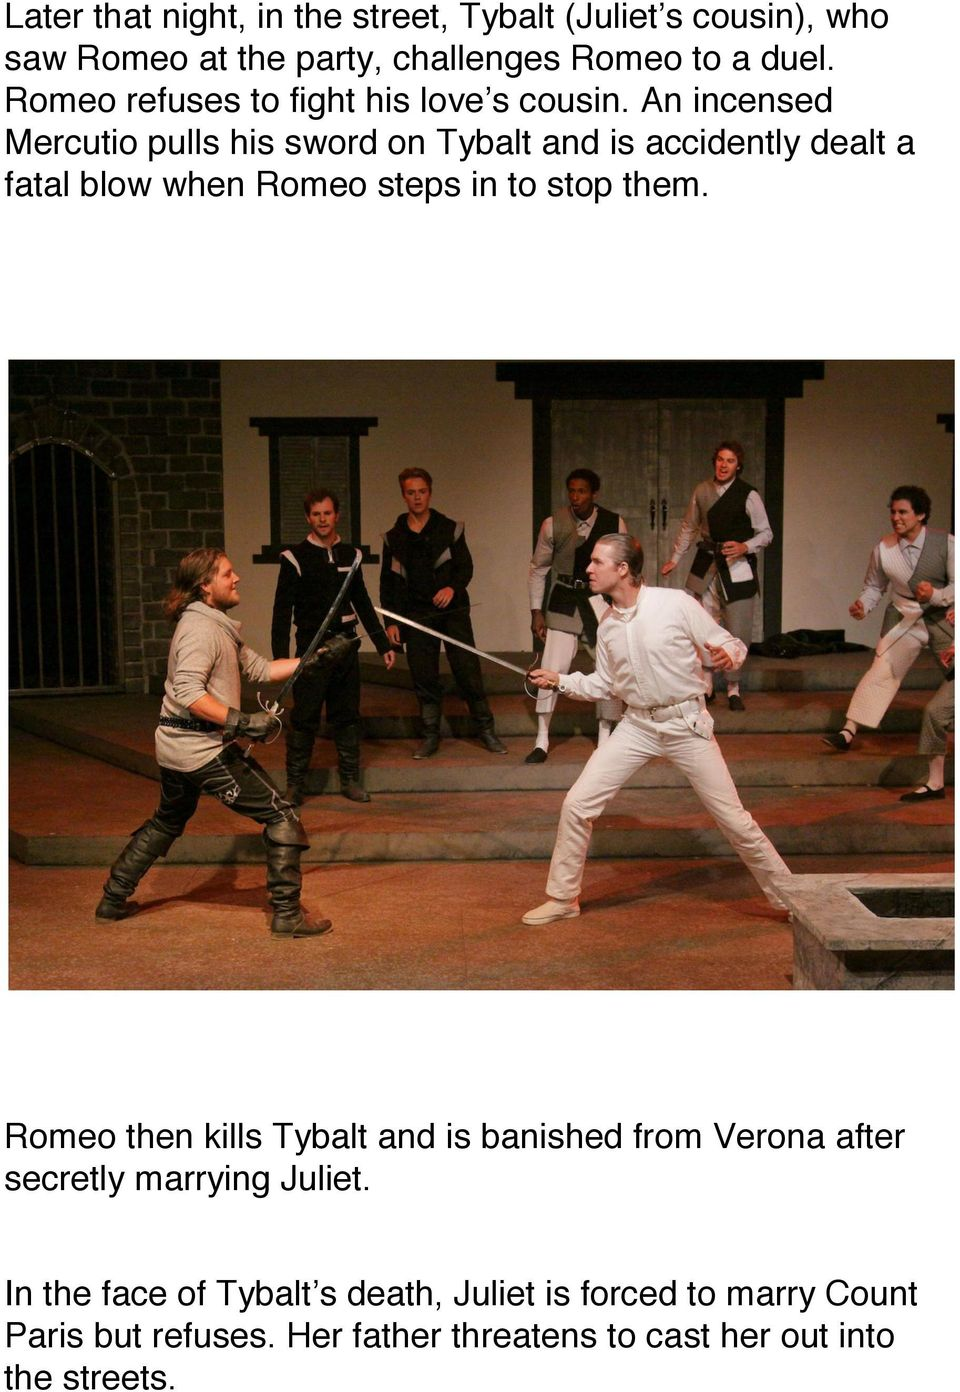 An incensed Mercutio pulls his sword on Tybalt and is accidently dealt a fatal blow when Romeo steps in to stop them.